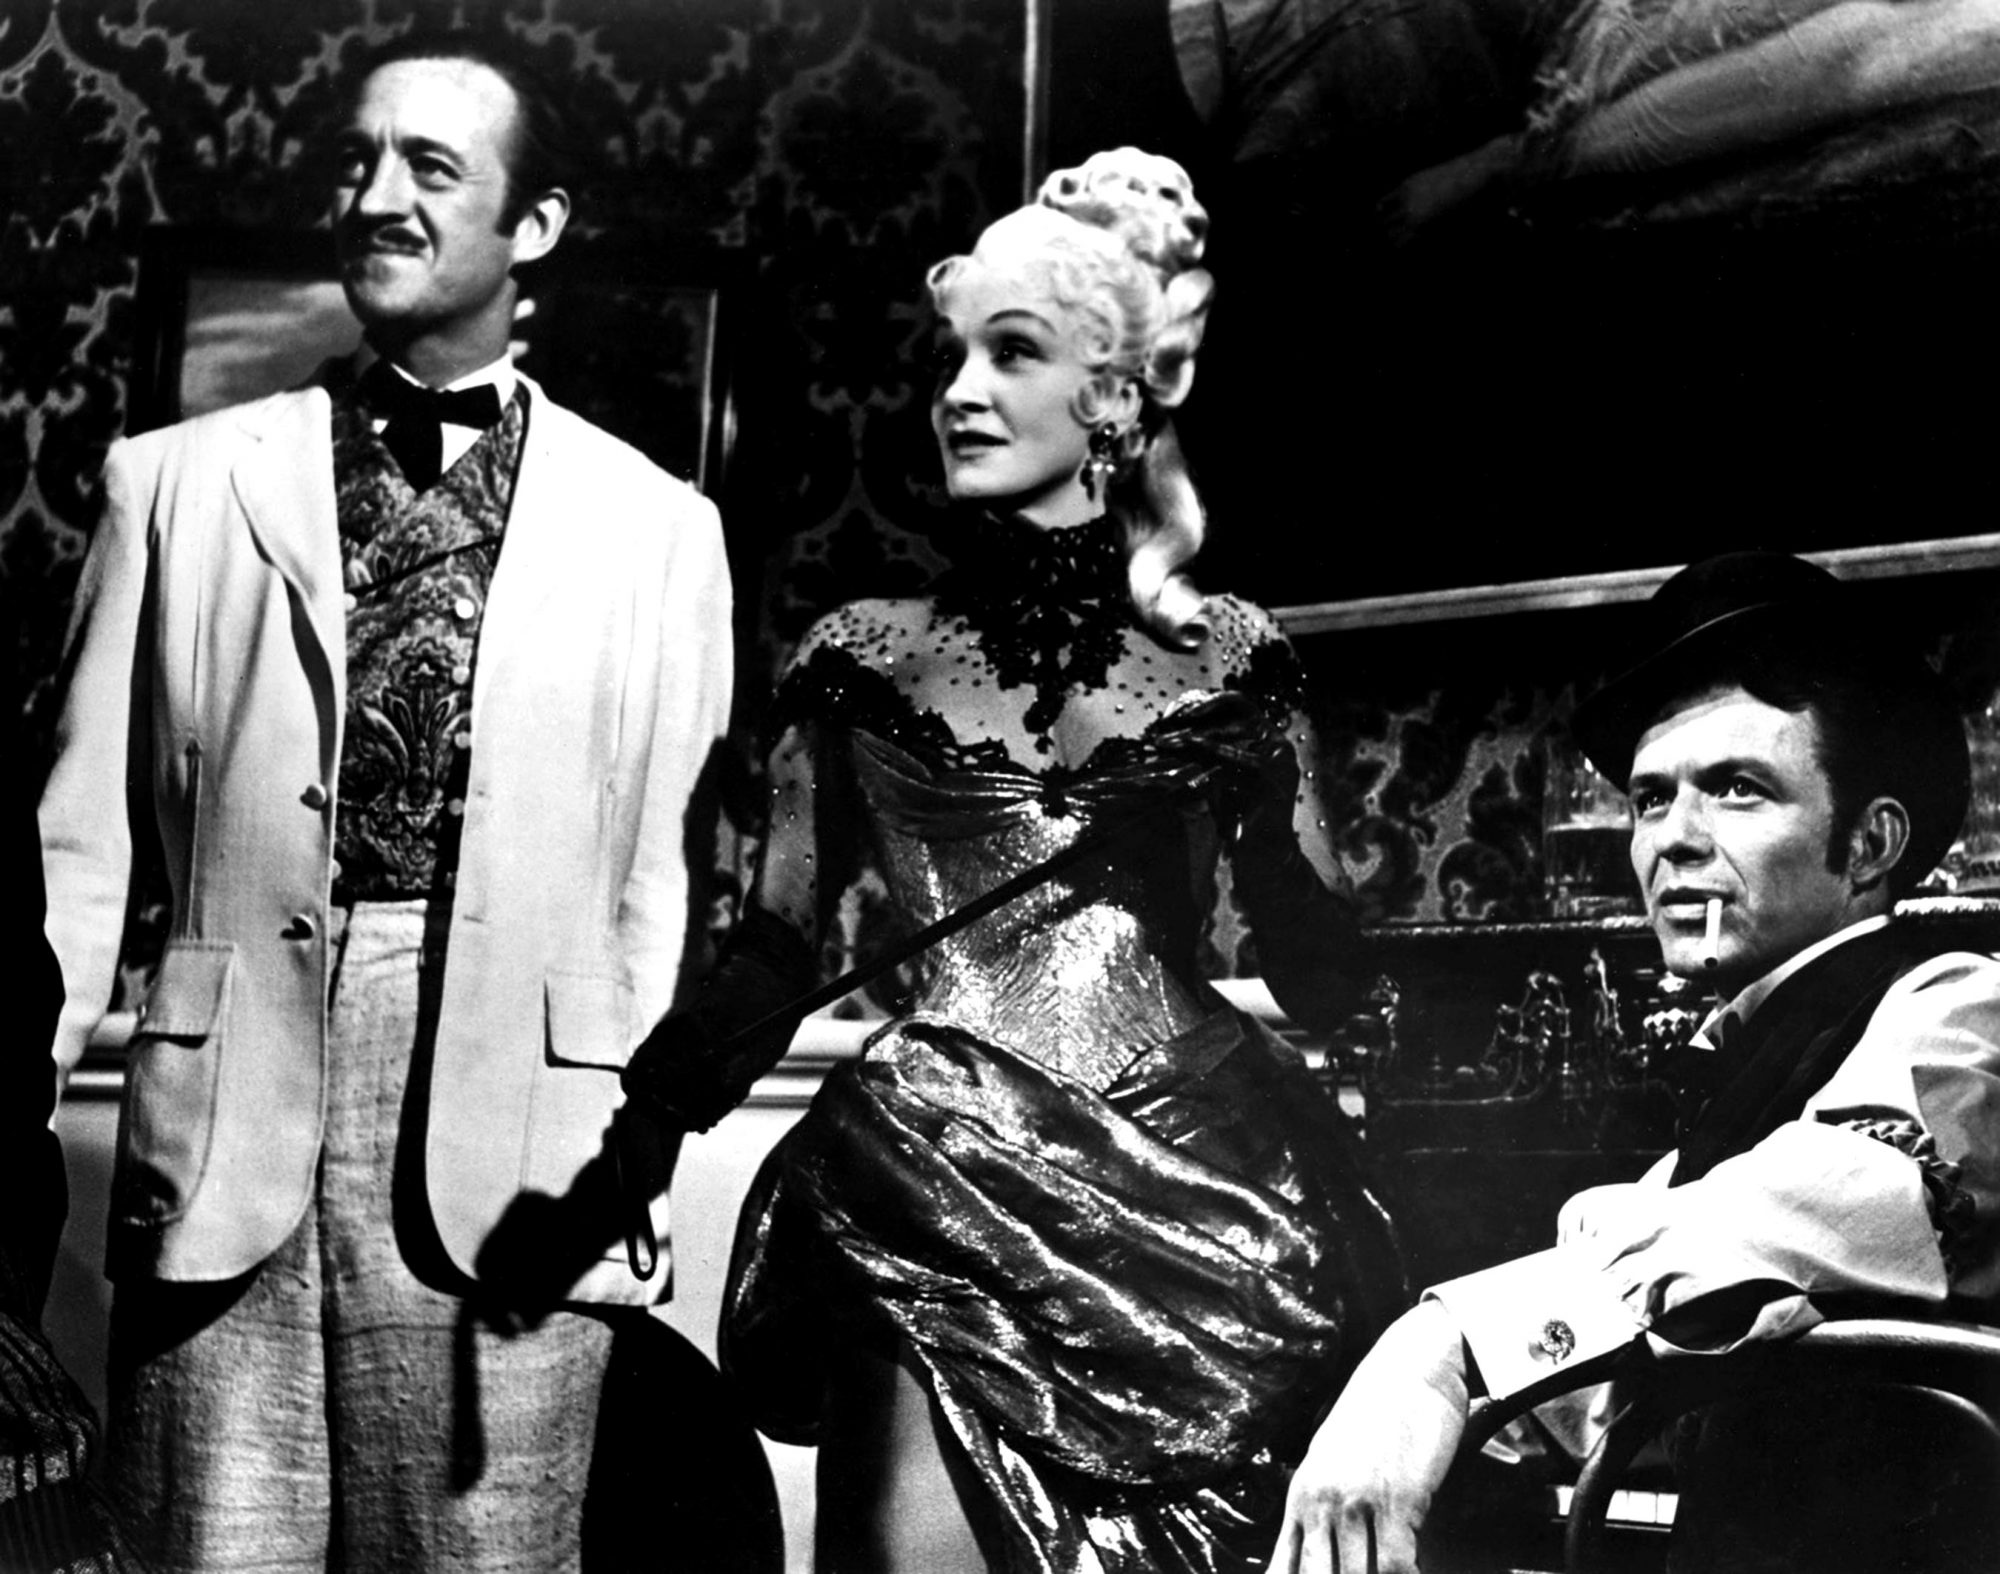 AROUND THE WORLD IN 80 DAYS, (aka AROUND THE WORLD IN EIGHTY DAYS), David Niven, Marlene Dietrich, F